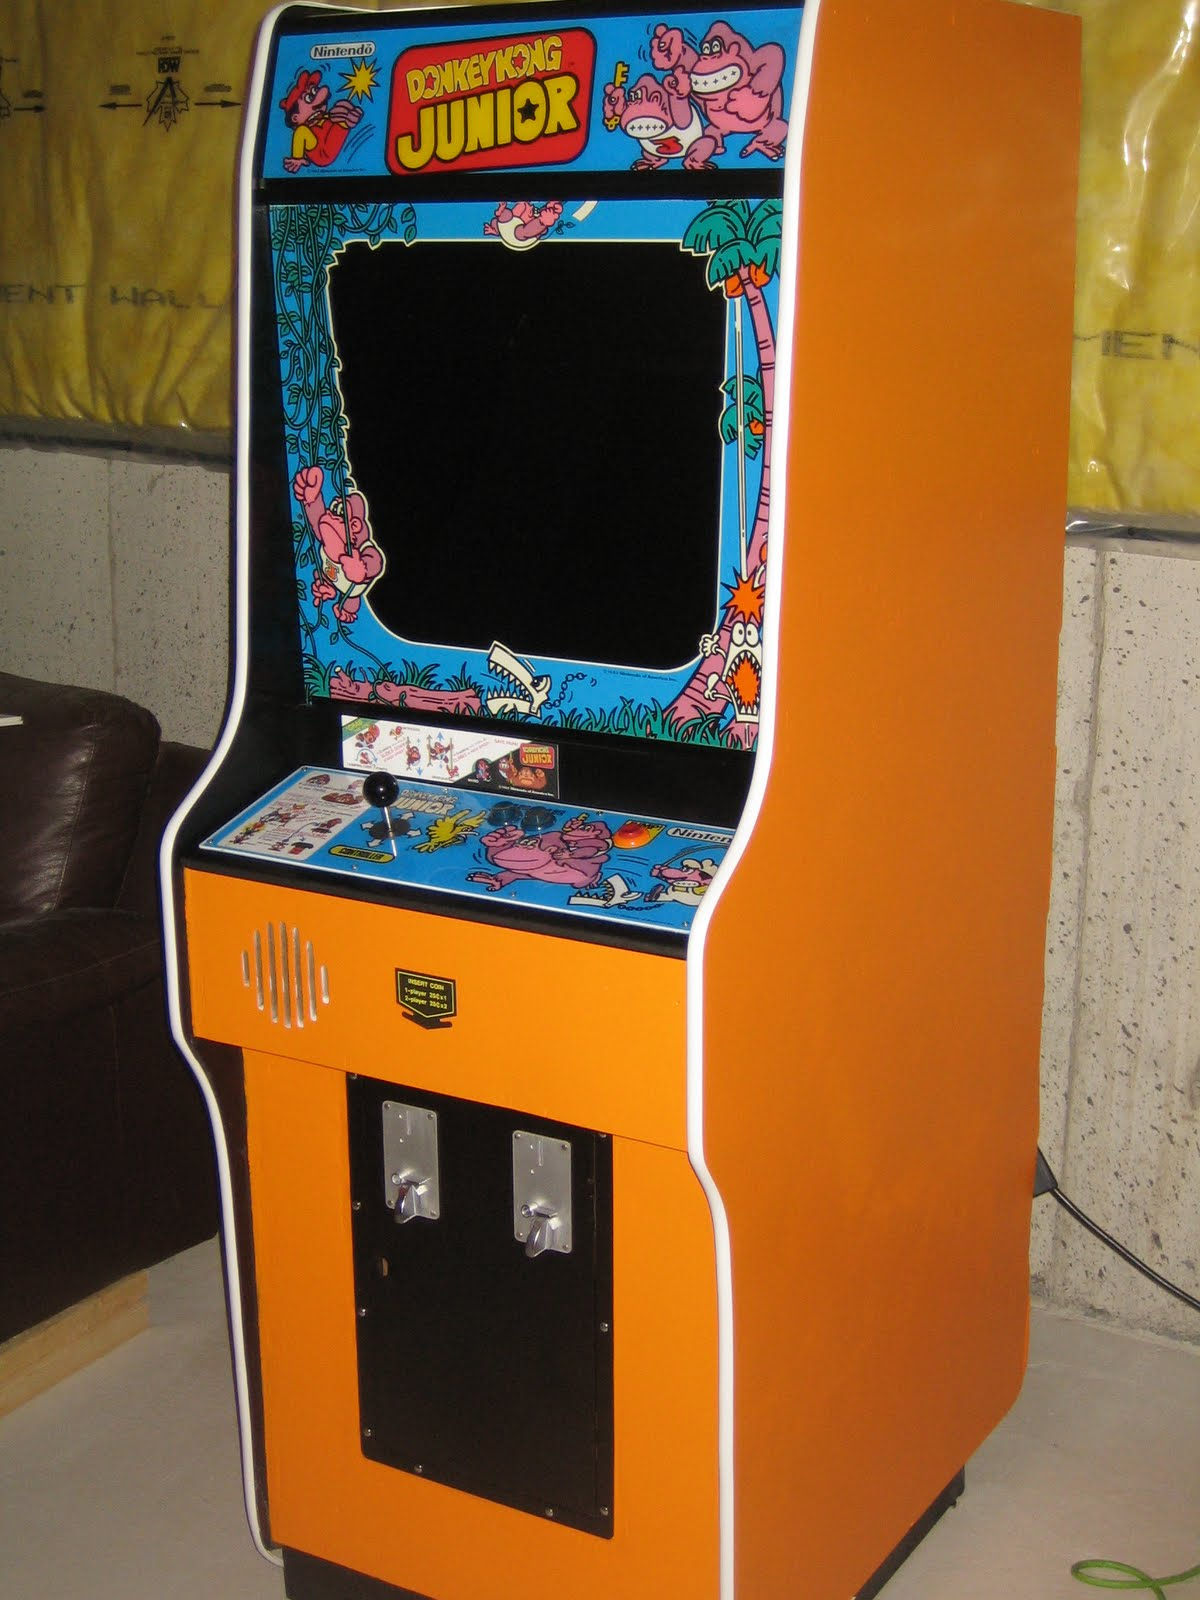 My Mission To Mame Donkey Kong Jr Mame Cabinet